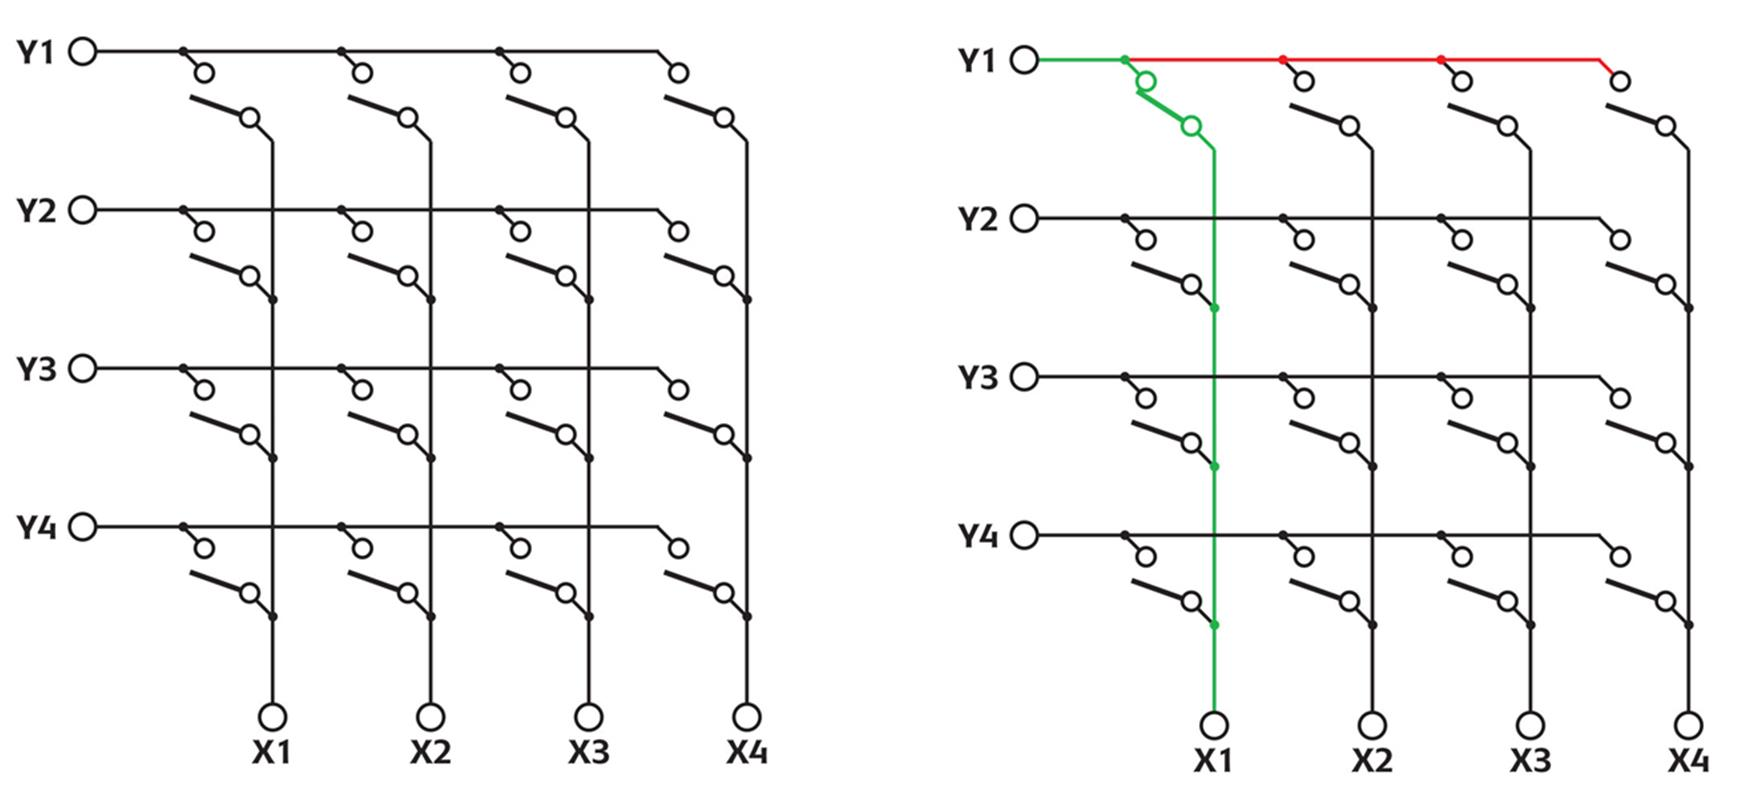 Understanding Tree And Crosspoint Matrix Architectures How To Build Electronic Selector For 10 Sources With Display Relay Drive A Uses An Array Of Spst Relays Close X Y Path Y1 Xi Closed Green Right Image Stub Appears Red On The